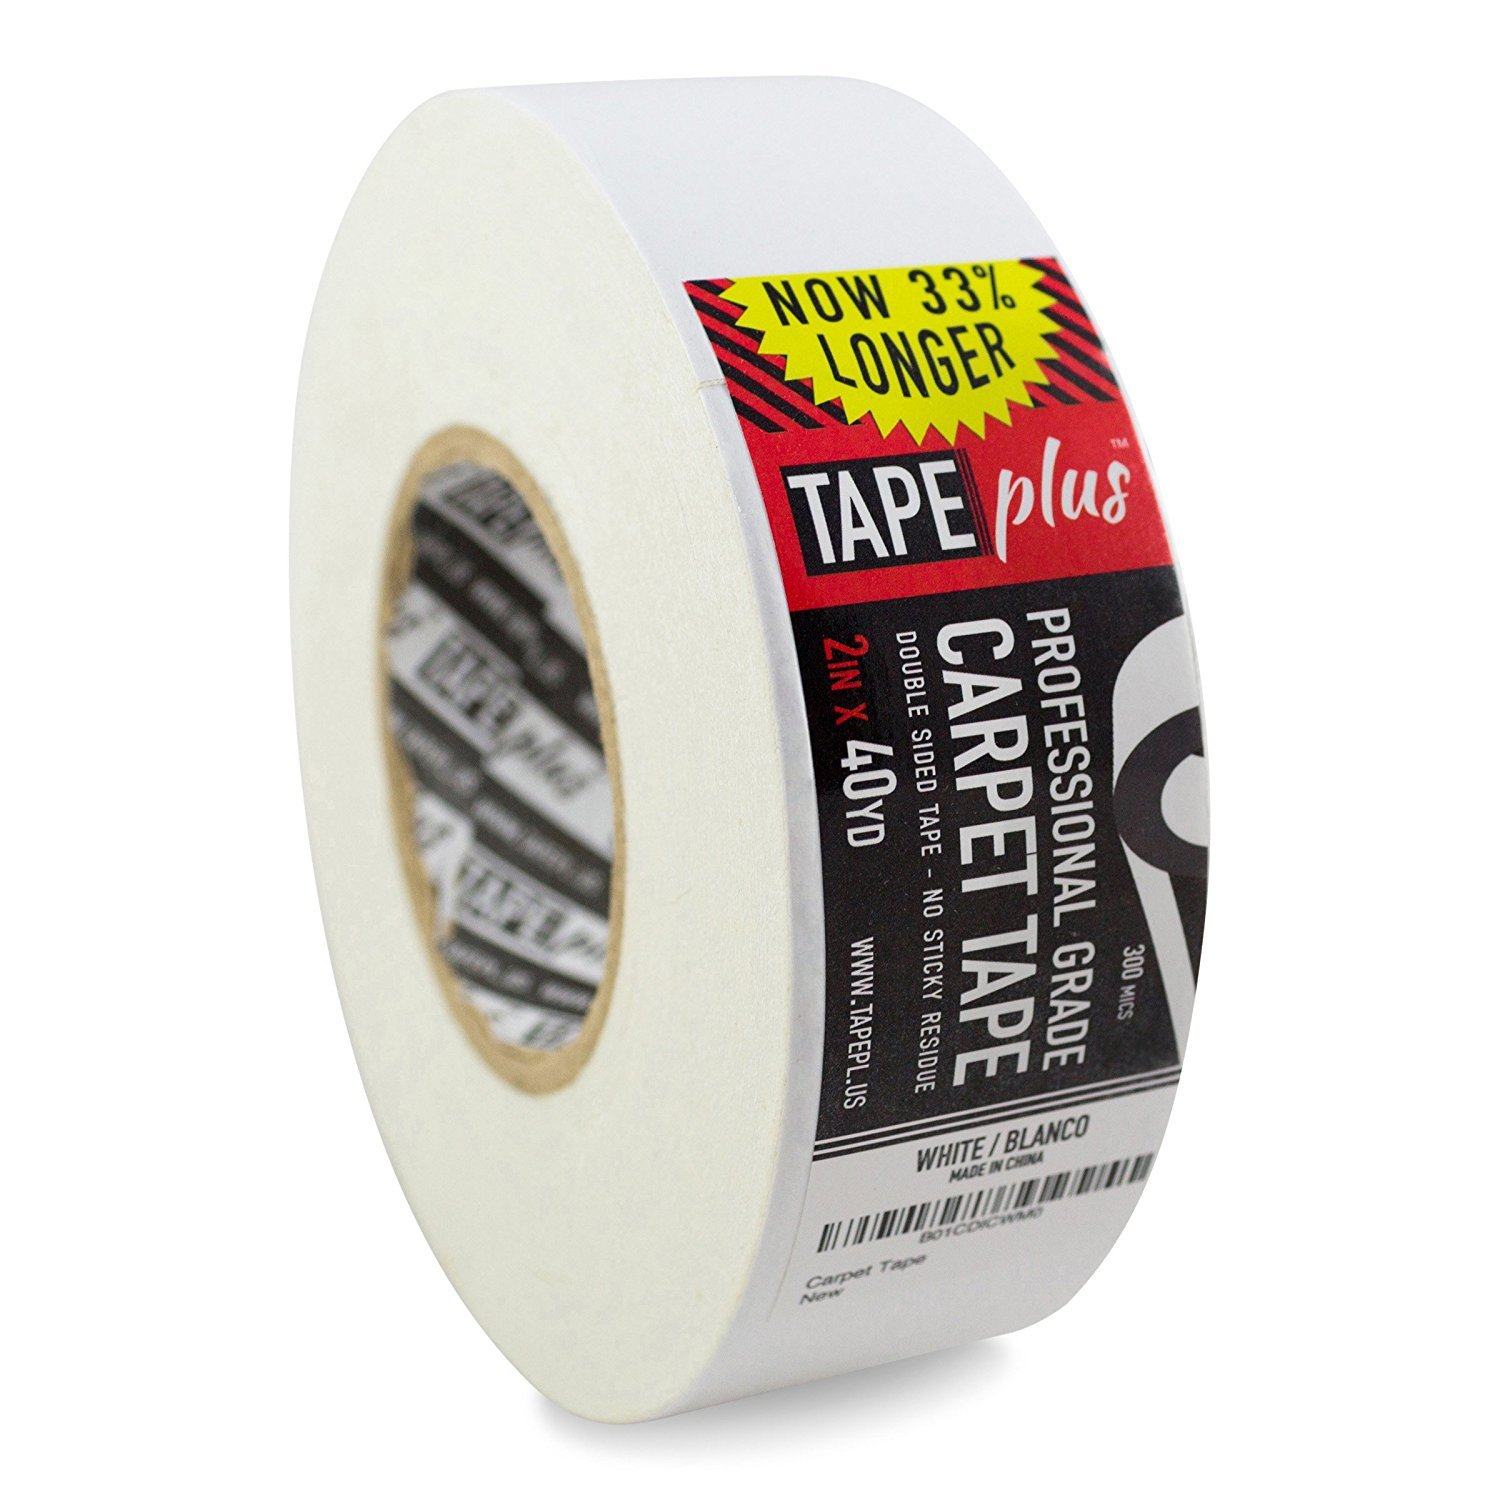 TapePlus 2 Inch by 40 Yards Double Sided Non-Slip Adhesive Carpet Tape, White FBA_carpet-tape